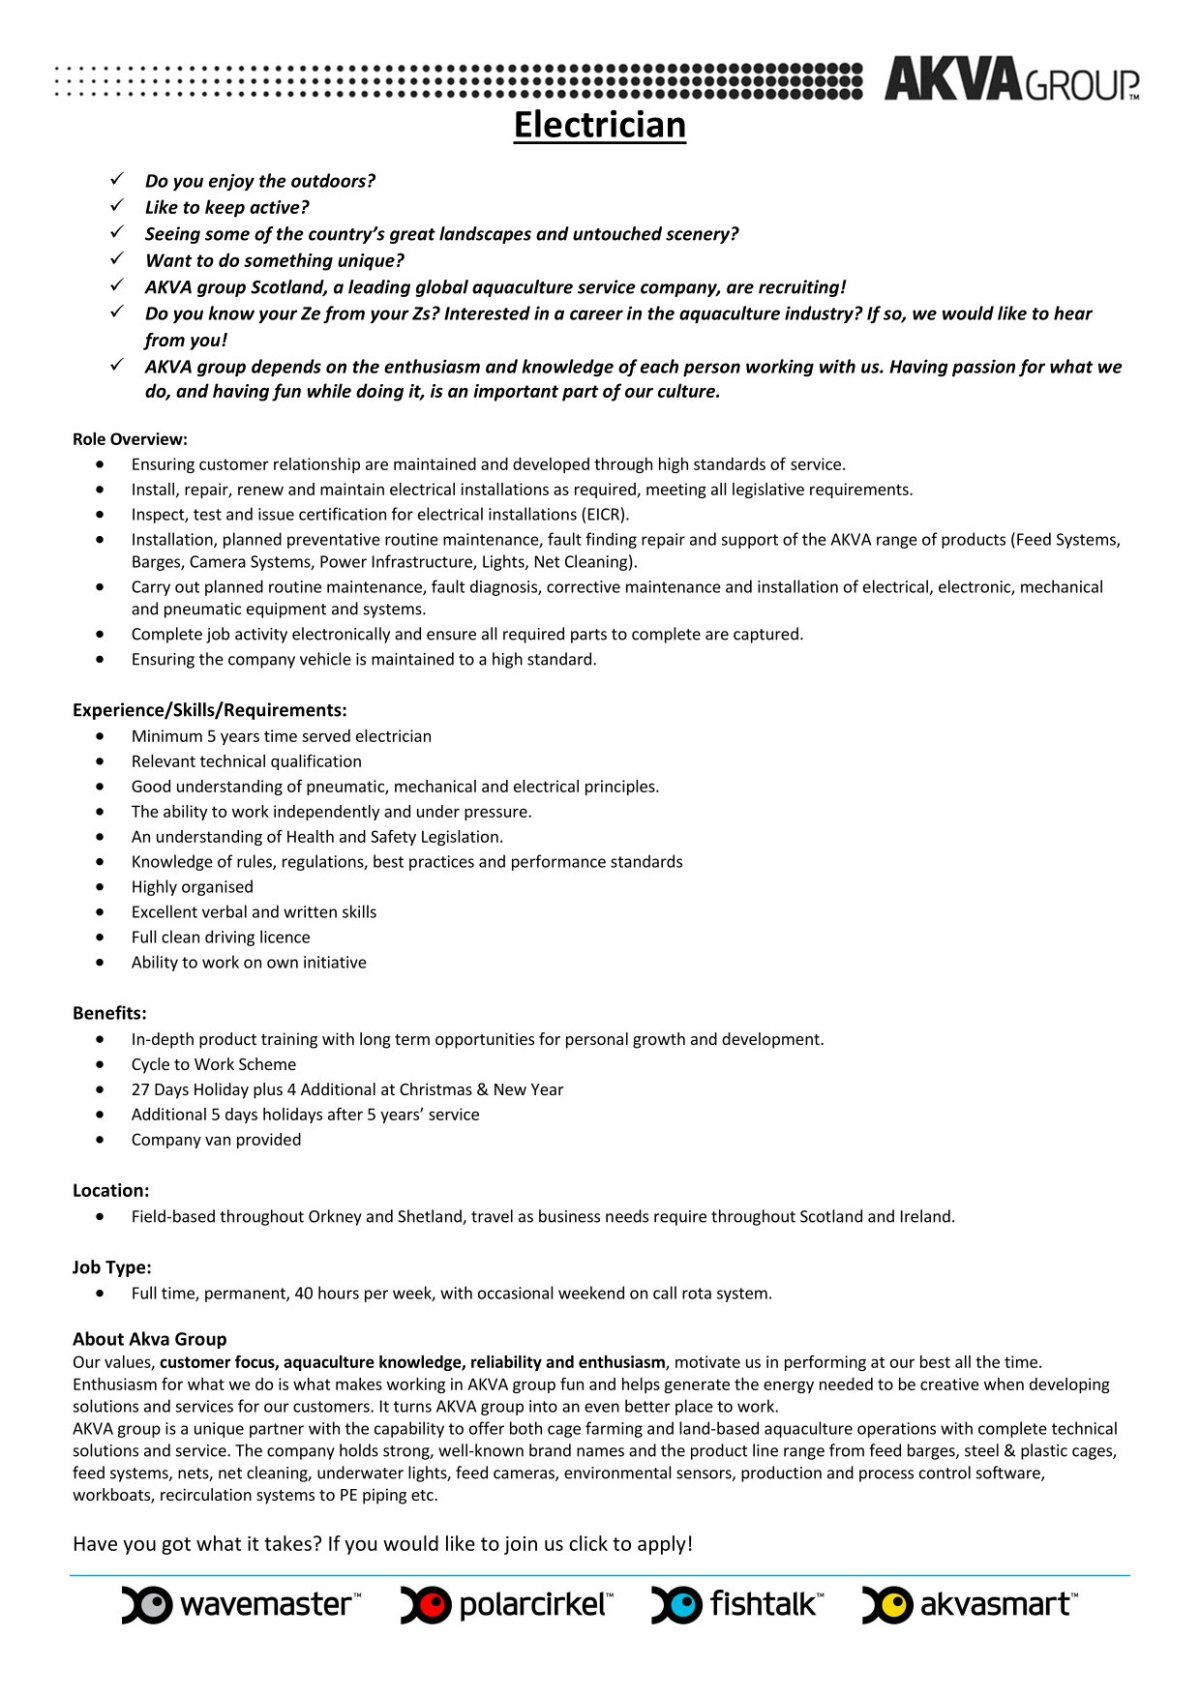 AKVA Group seeking Electrician. Summary of post.